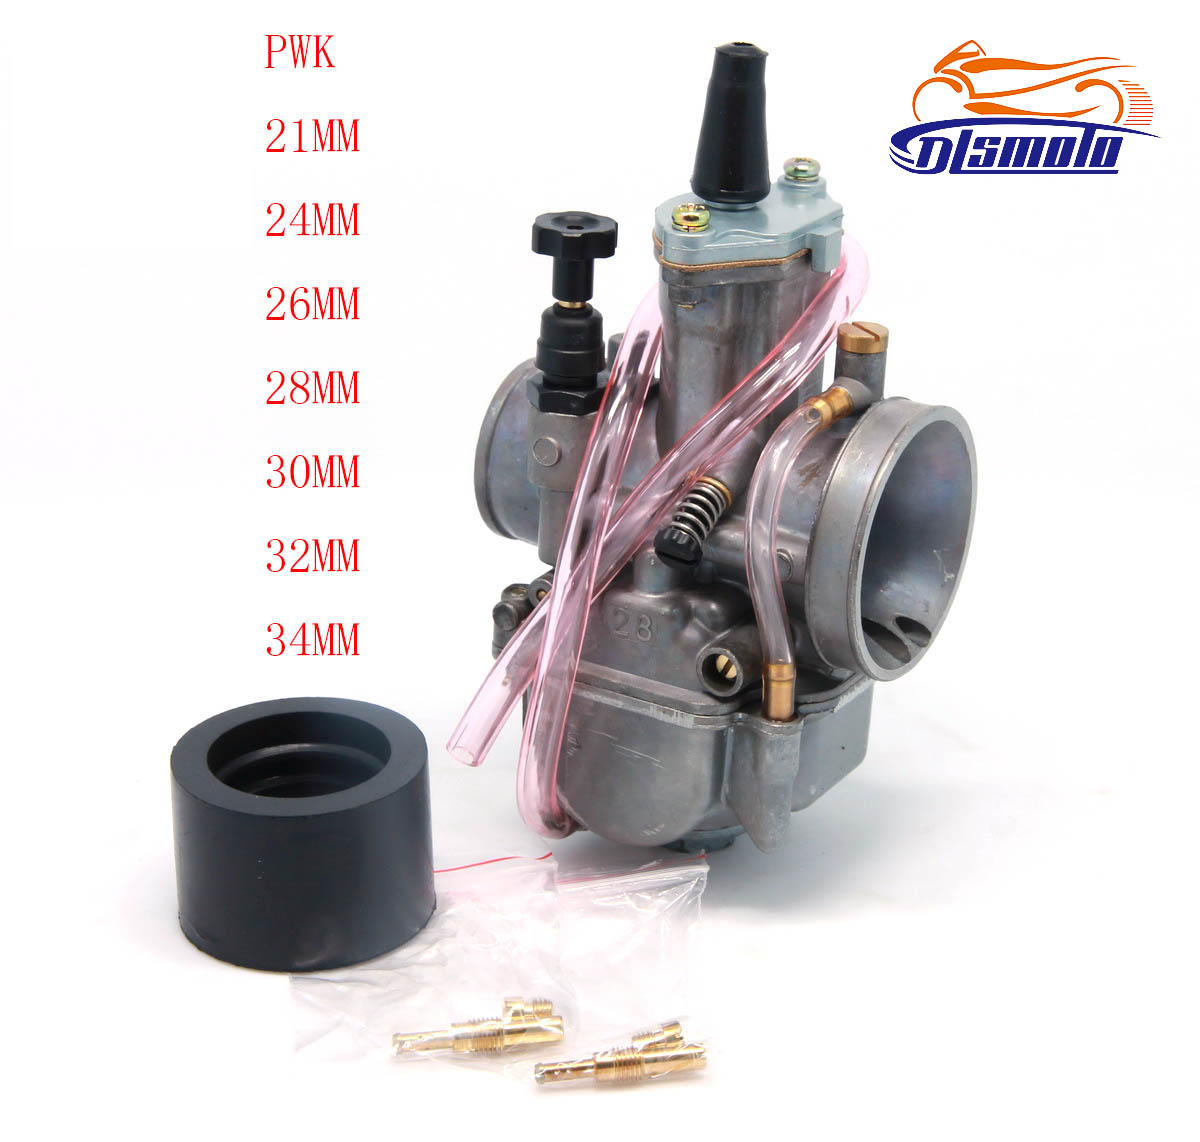 <font><b>PWK</b></font> 21 24 26 28 30 32 34 24MM 26MM 28MM 30MM 32MM <font><b>34MM</b></font> Racing Carburetor Koso OKO Keihin With Power Jet image